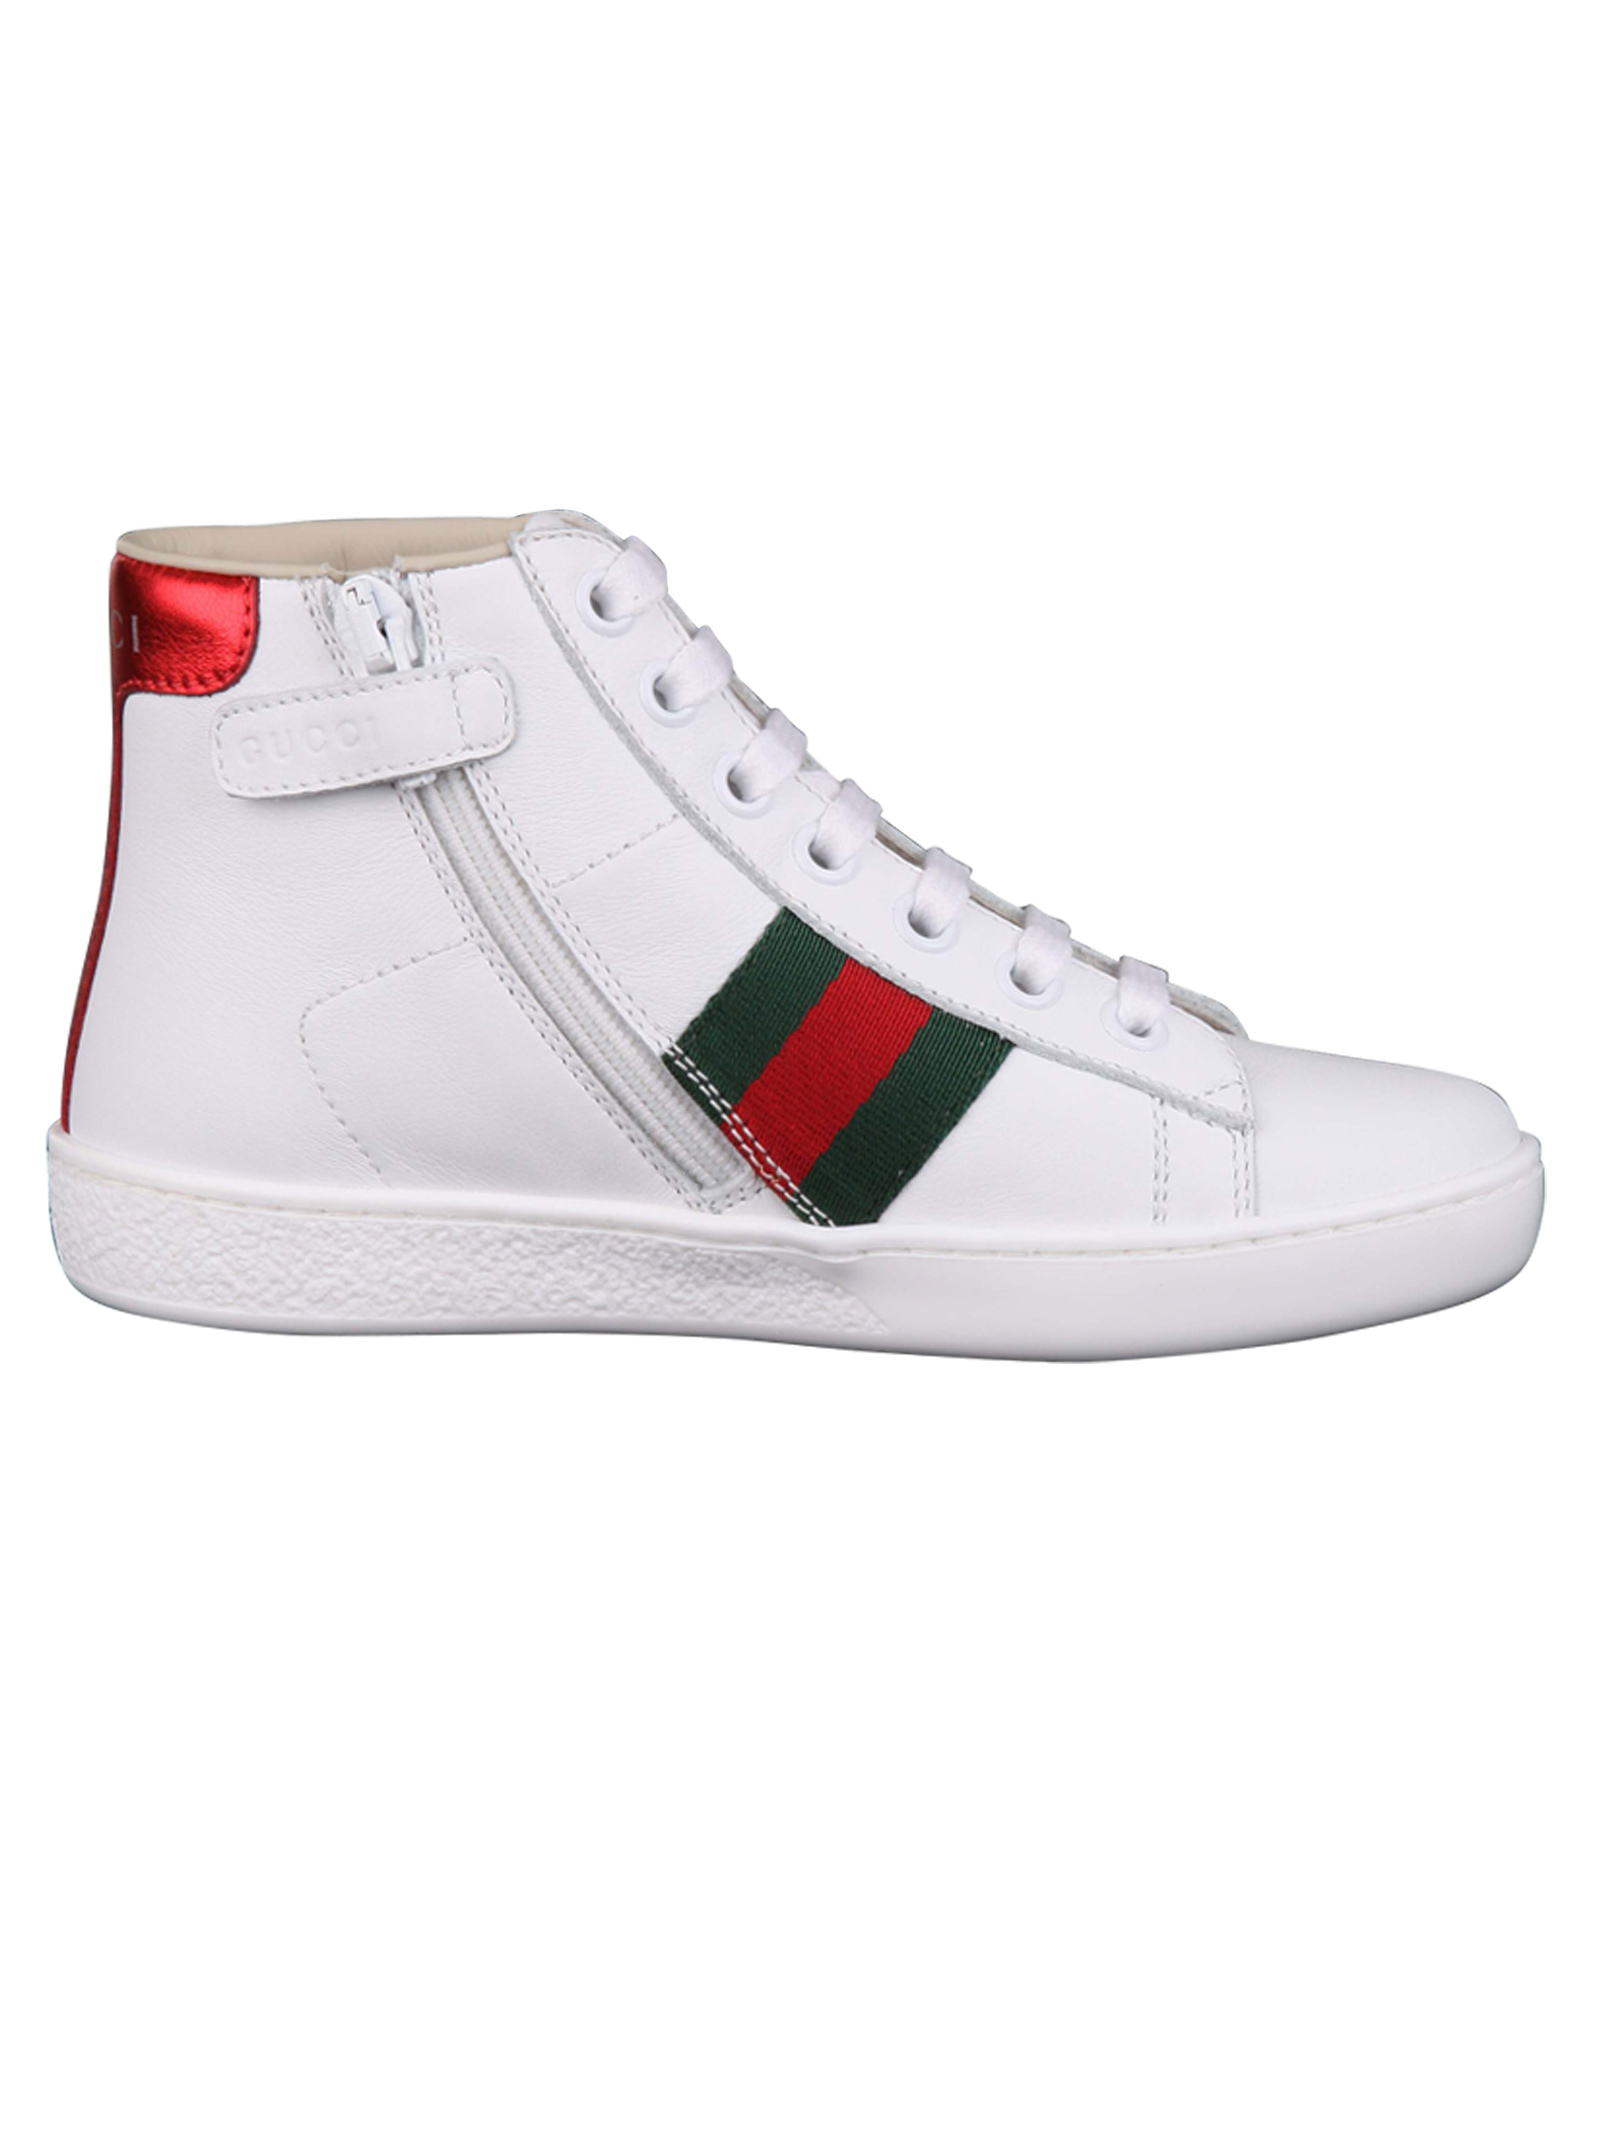 afa90e44679 Gucci Junior sneakers - Gucci Junior - Michele Franzese Moda